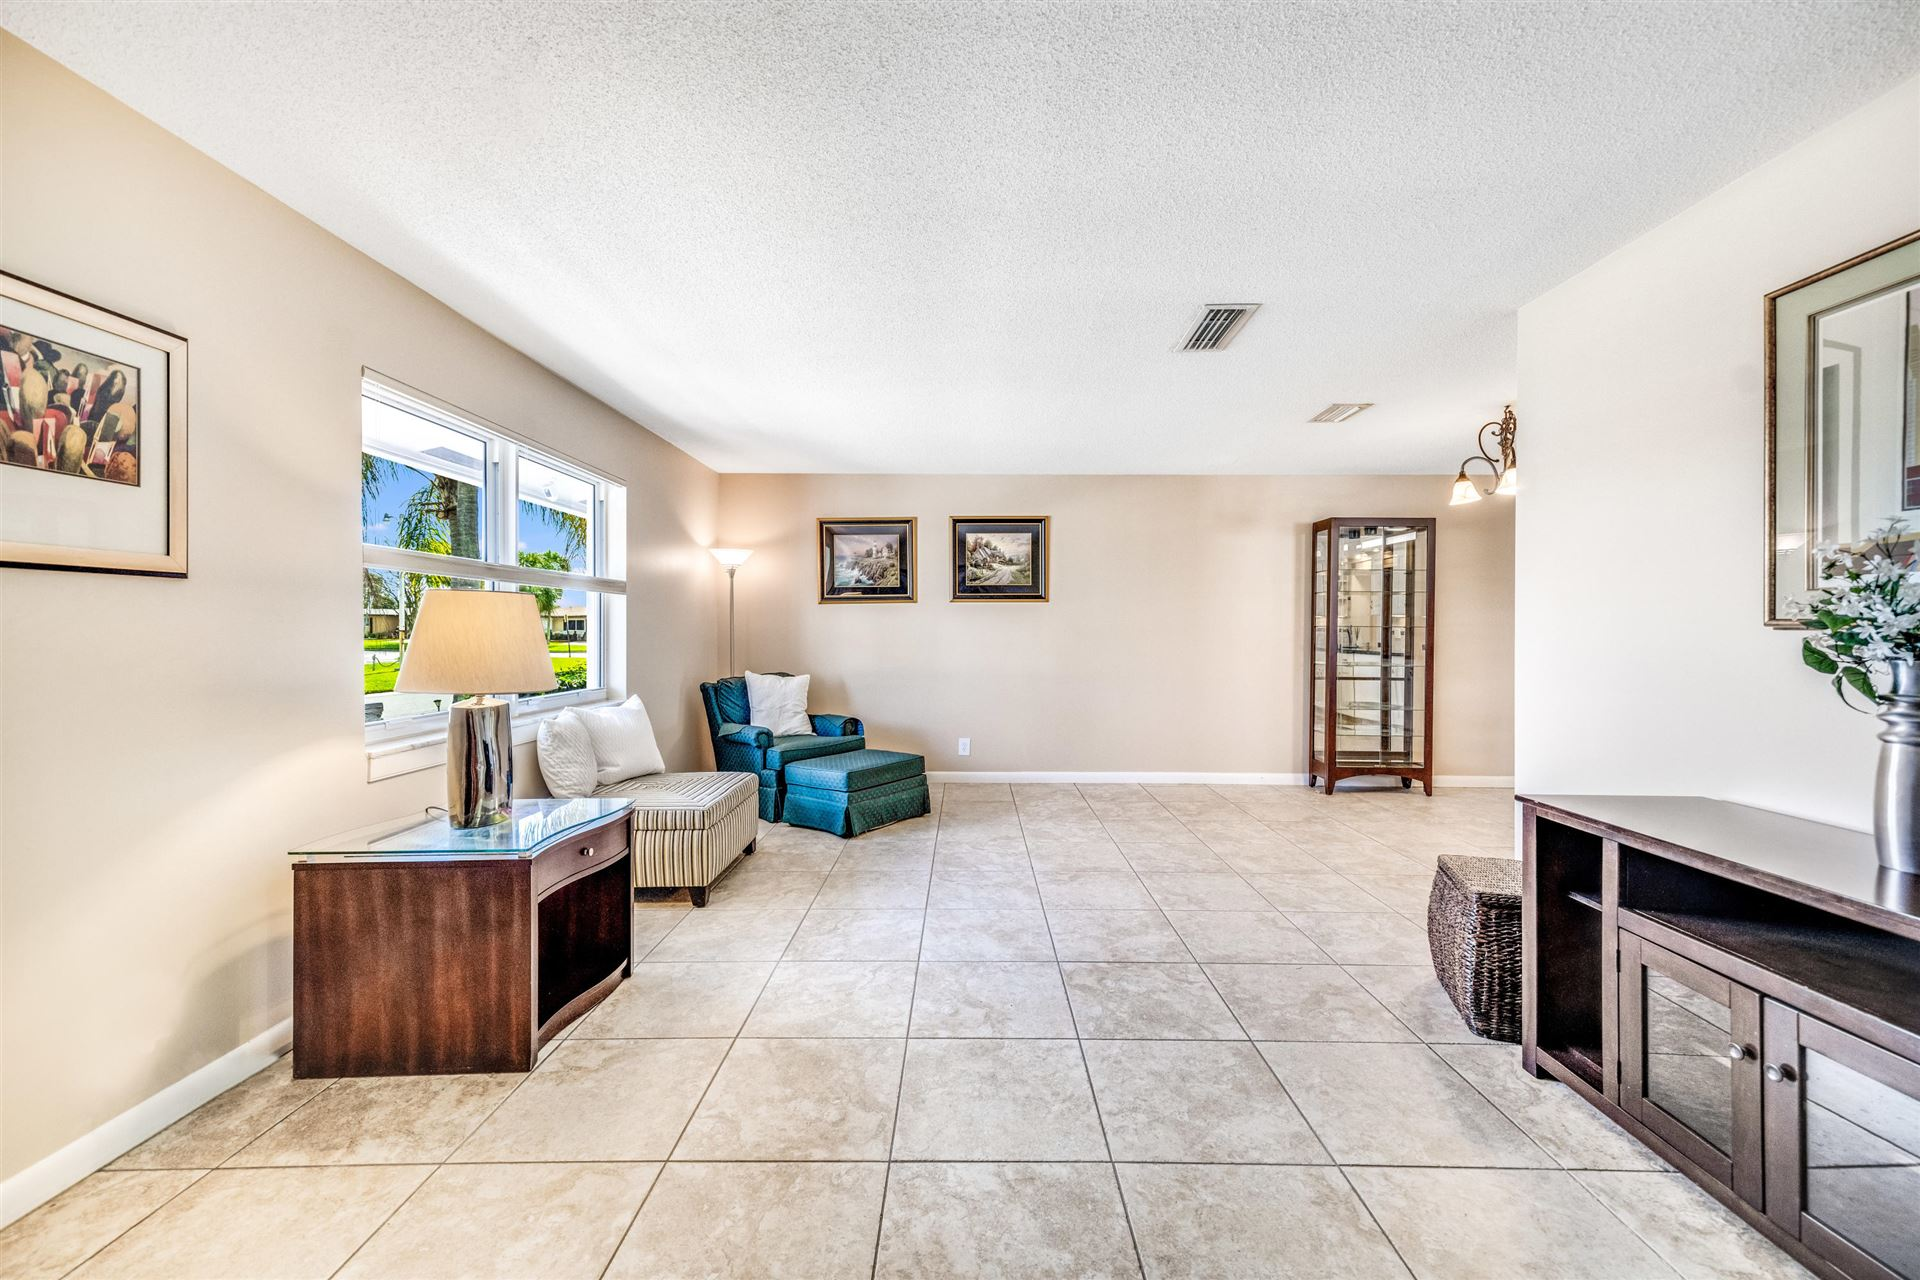 Photo of 1380 NW 70th Terrace, Margate, FL 33063 (MLS # RX-10692493)